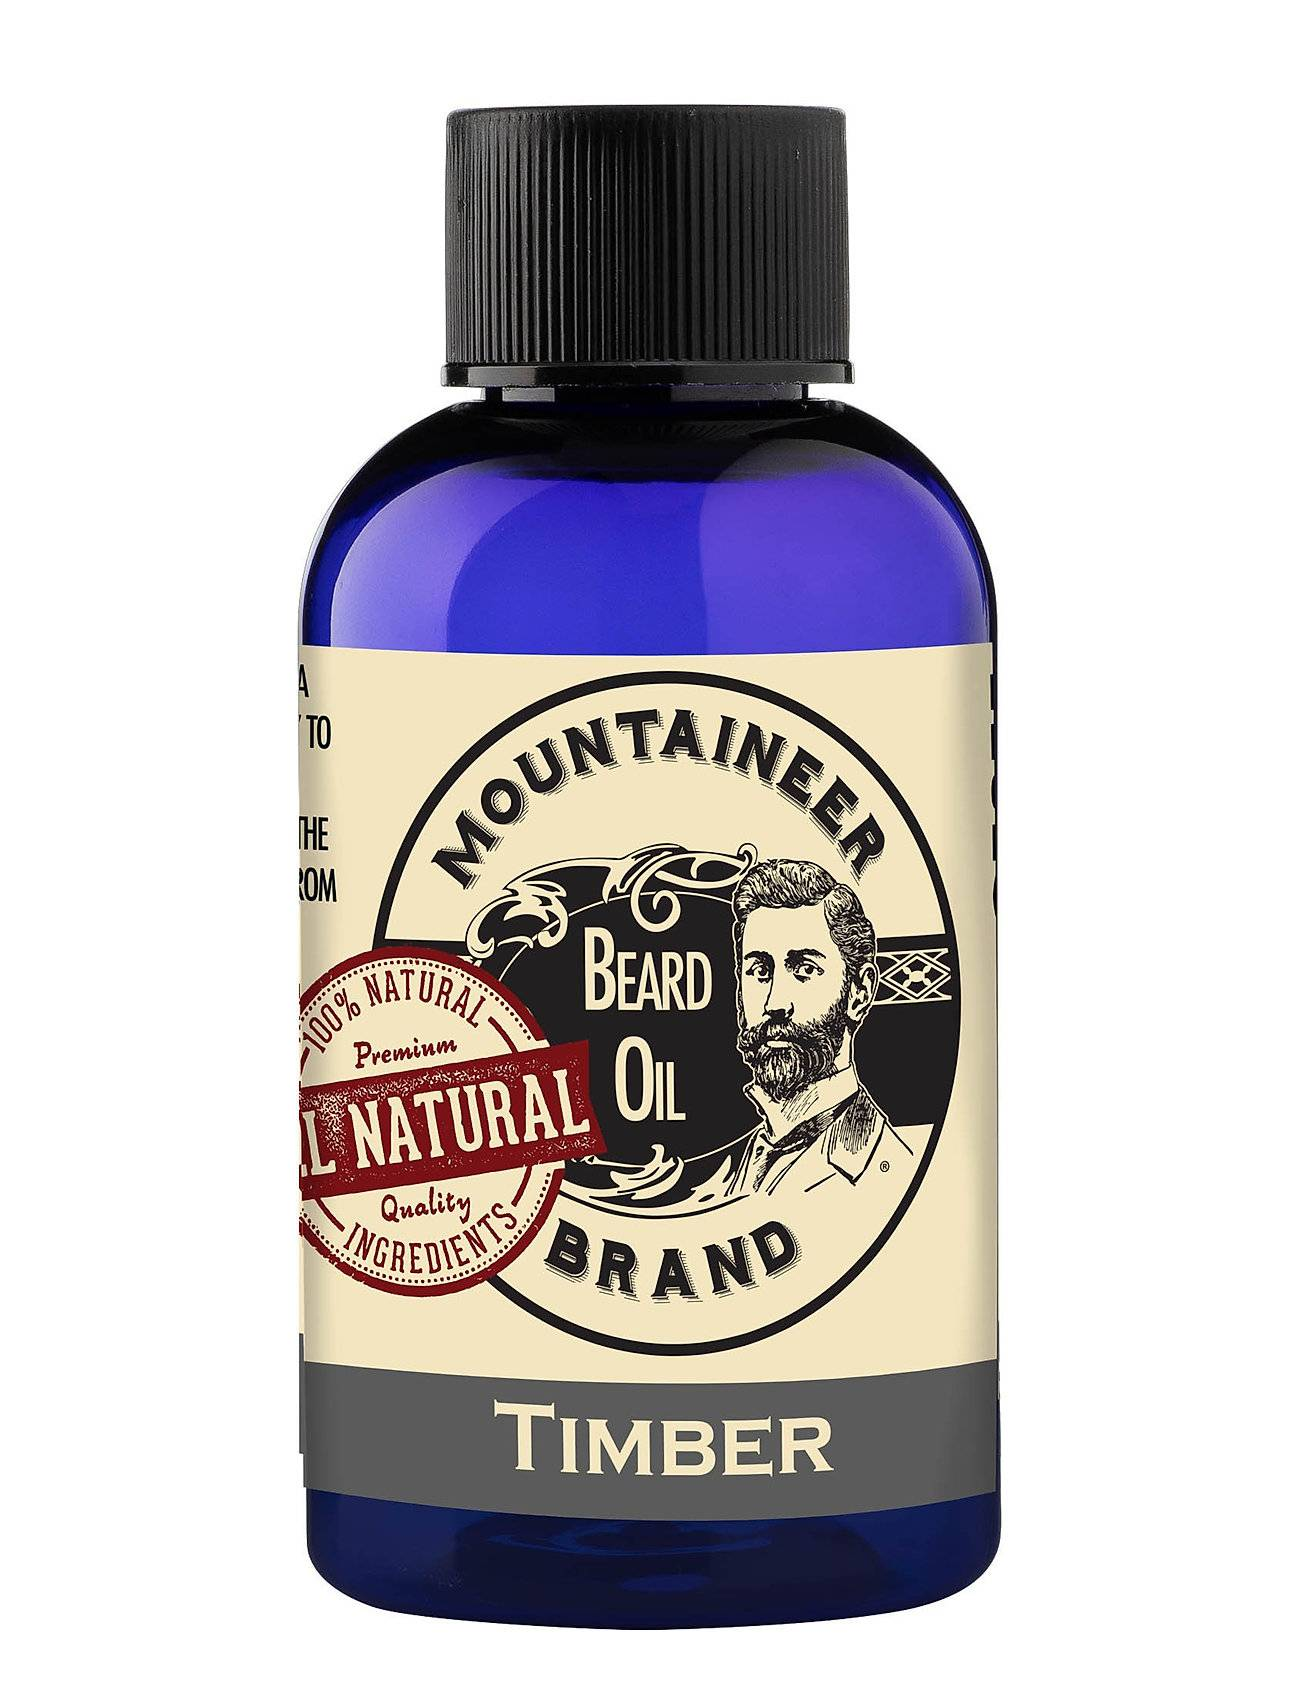 Mountaineer Brand Timber Beard Oil Beauty MEN Shaving Products Beard & Mustache Nude Mountaineer Brand